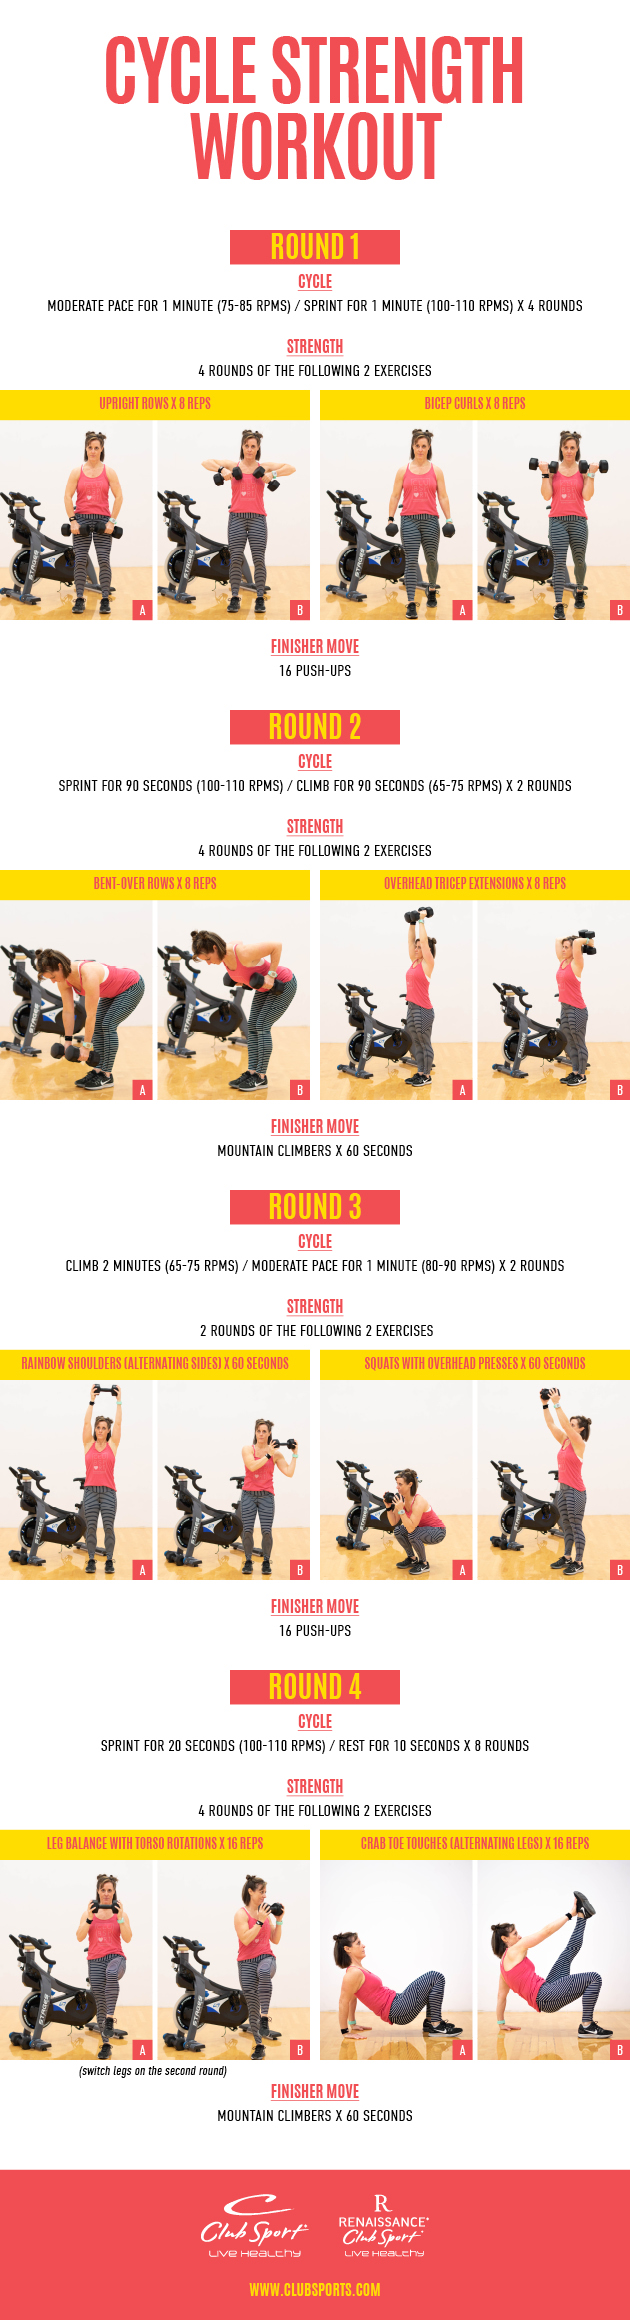 Cycle Strength Workout